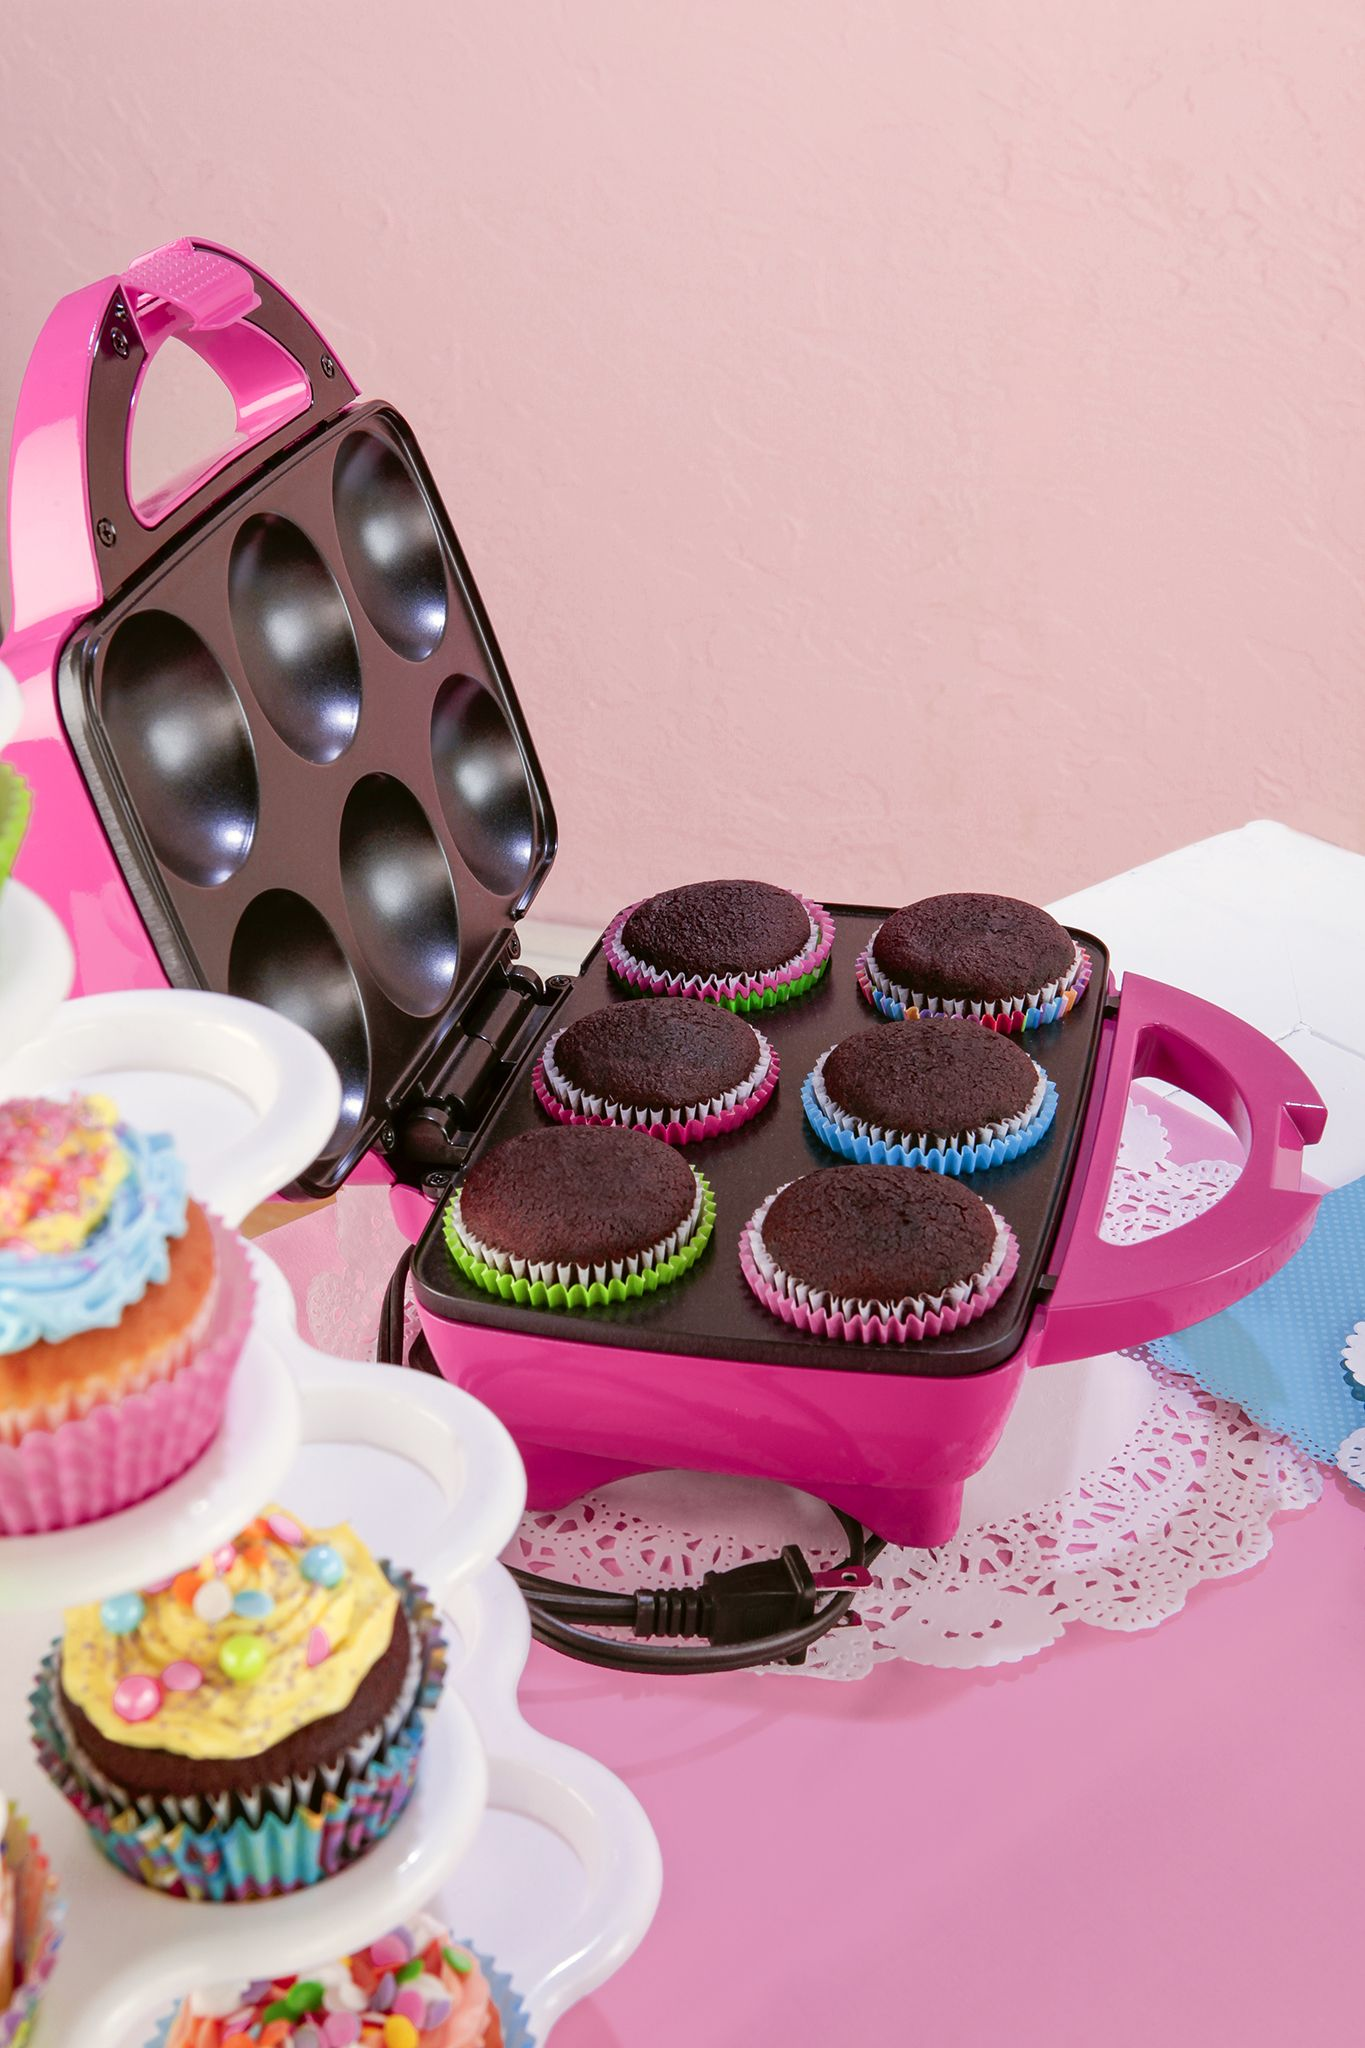 Making Cupcakes Has Never Been So Easy This Handy Cupcake Maker